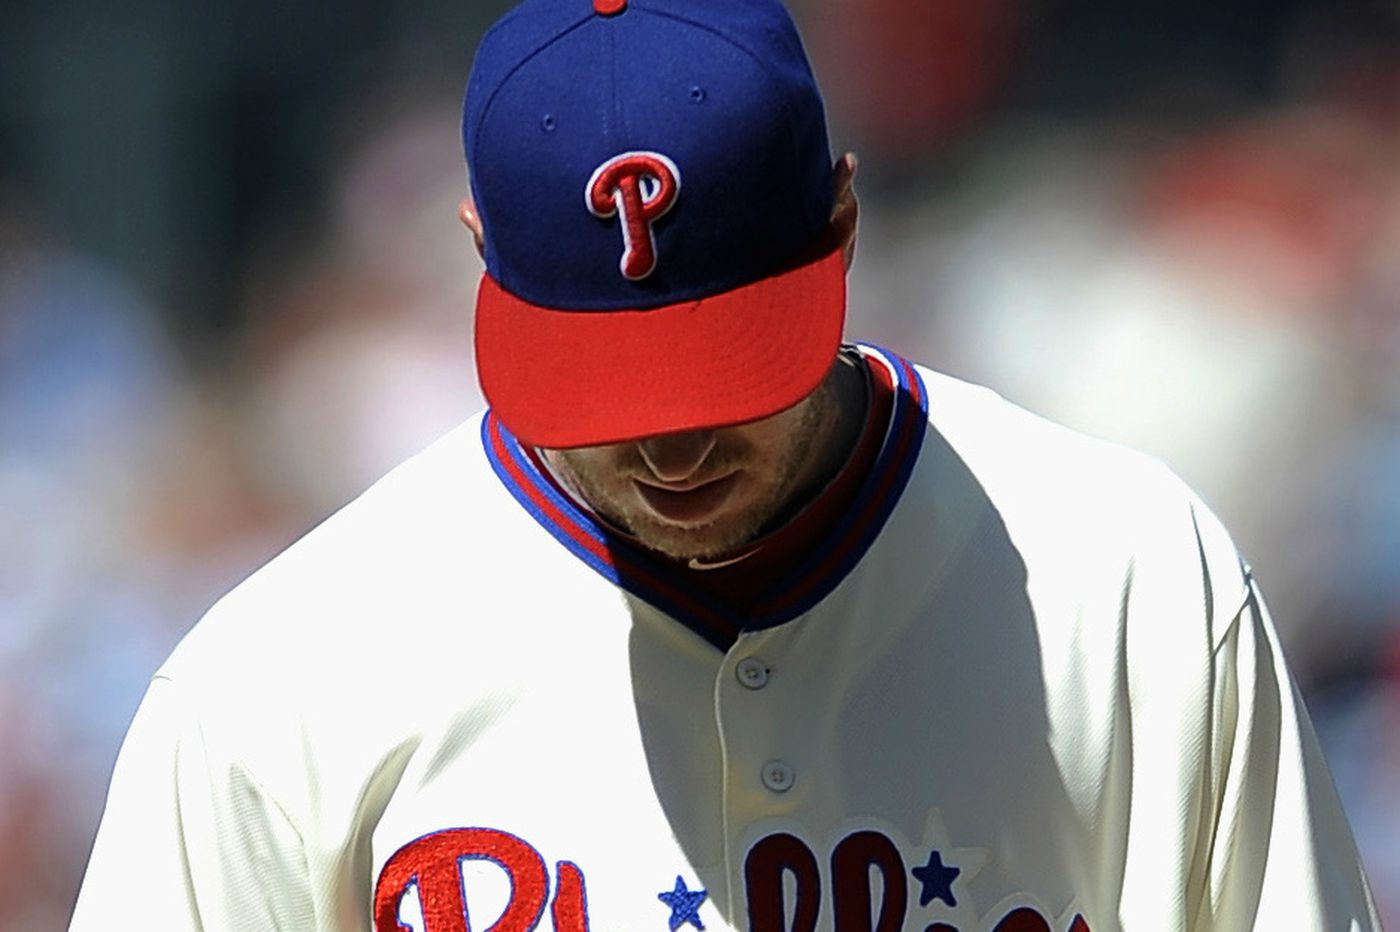 Halladay's message to Phillies fans